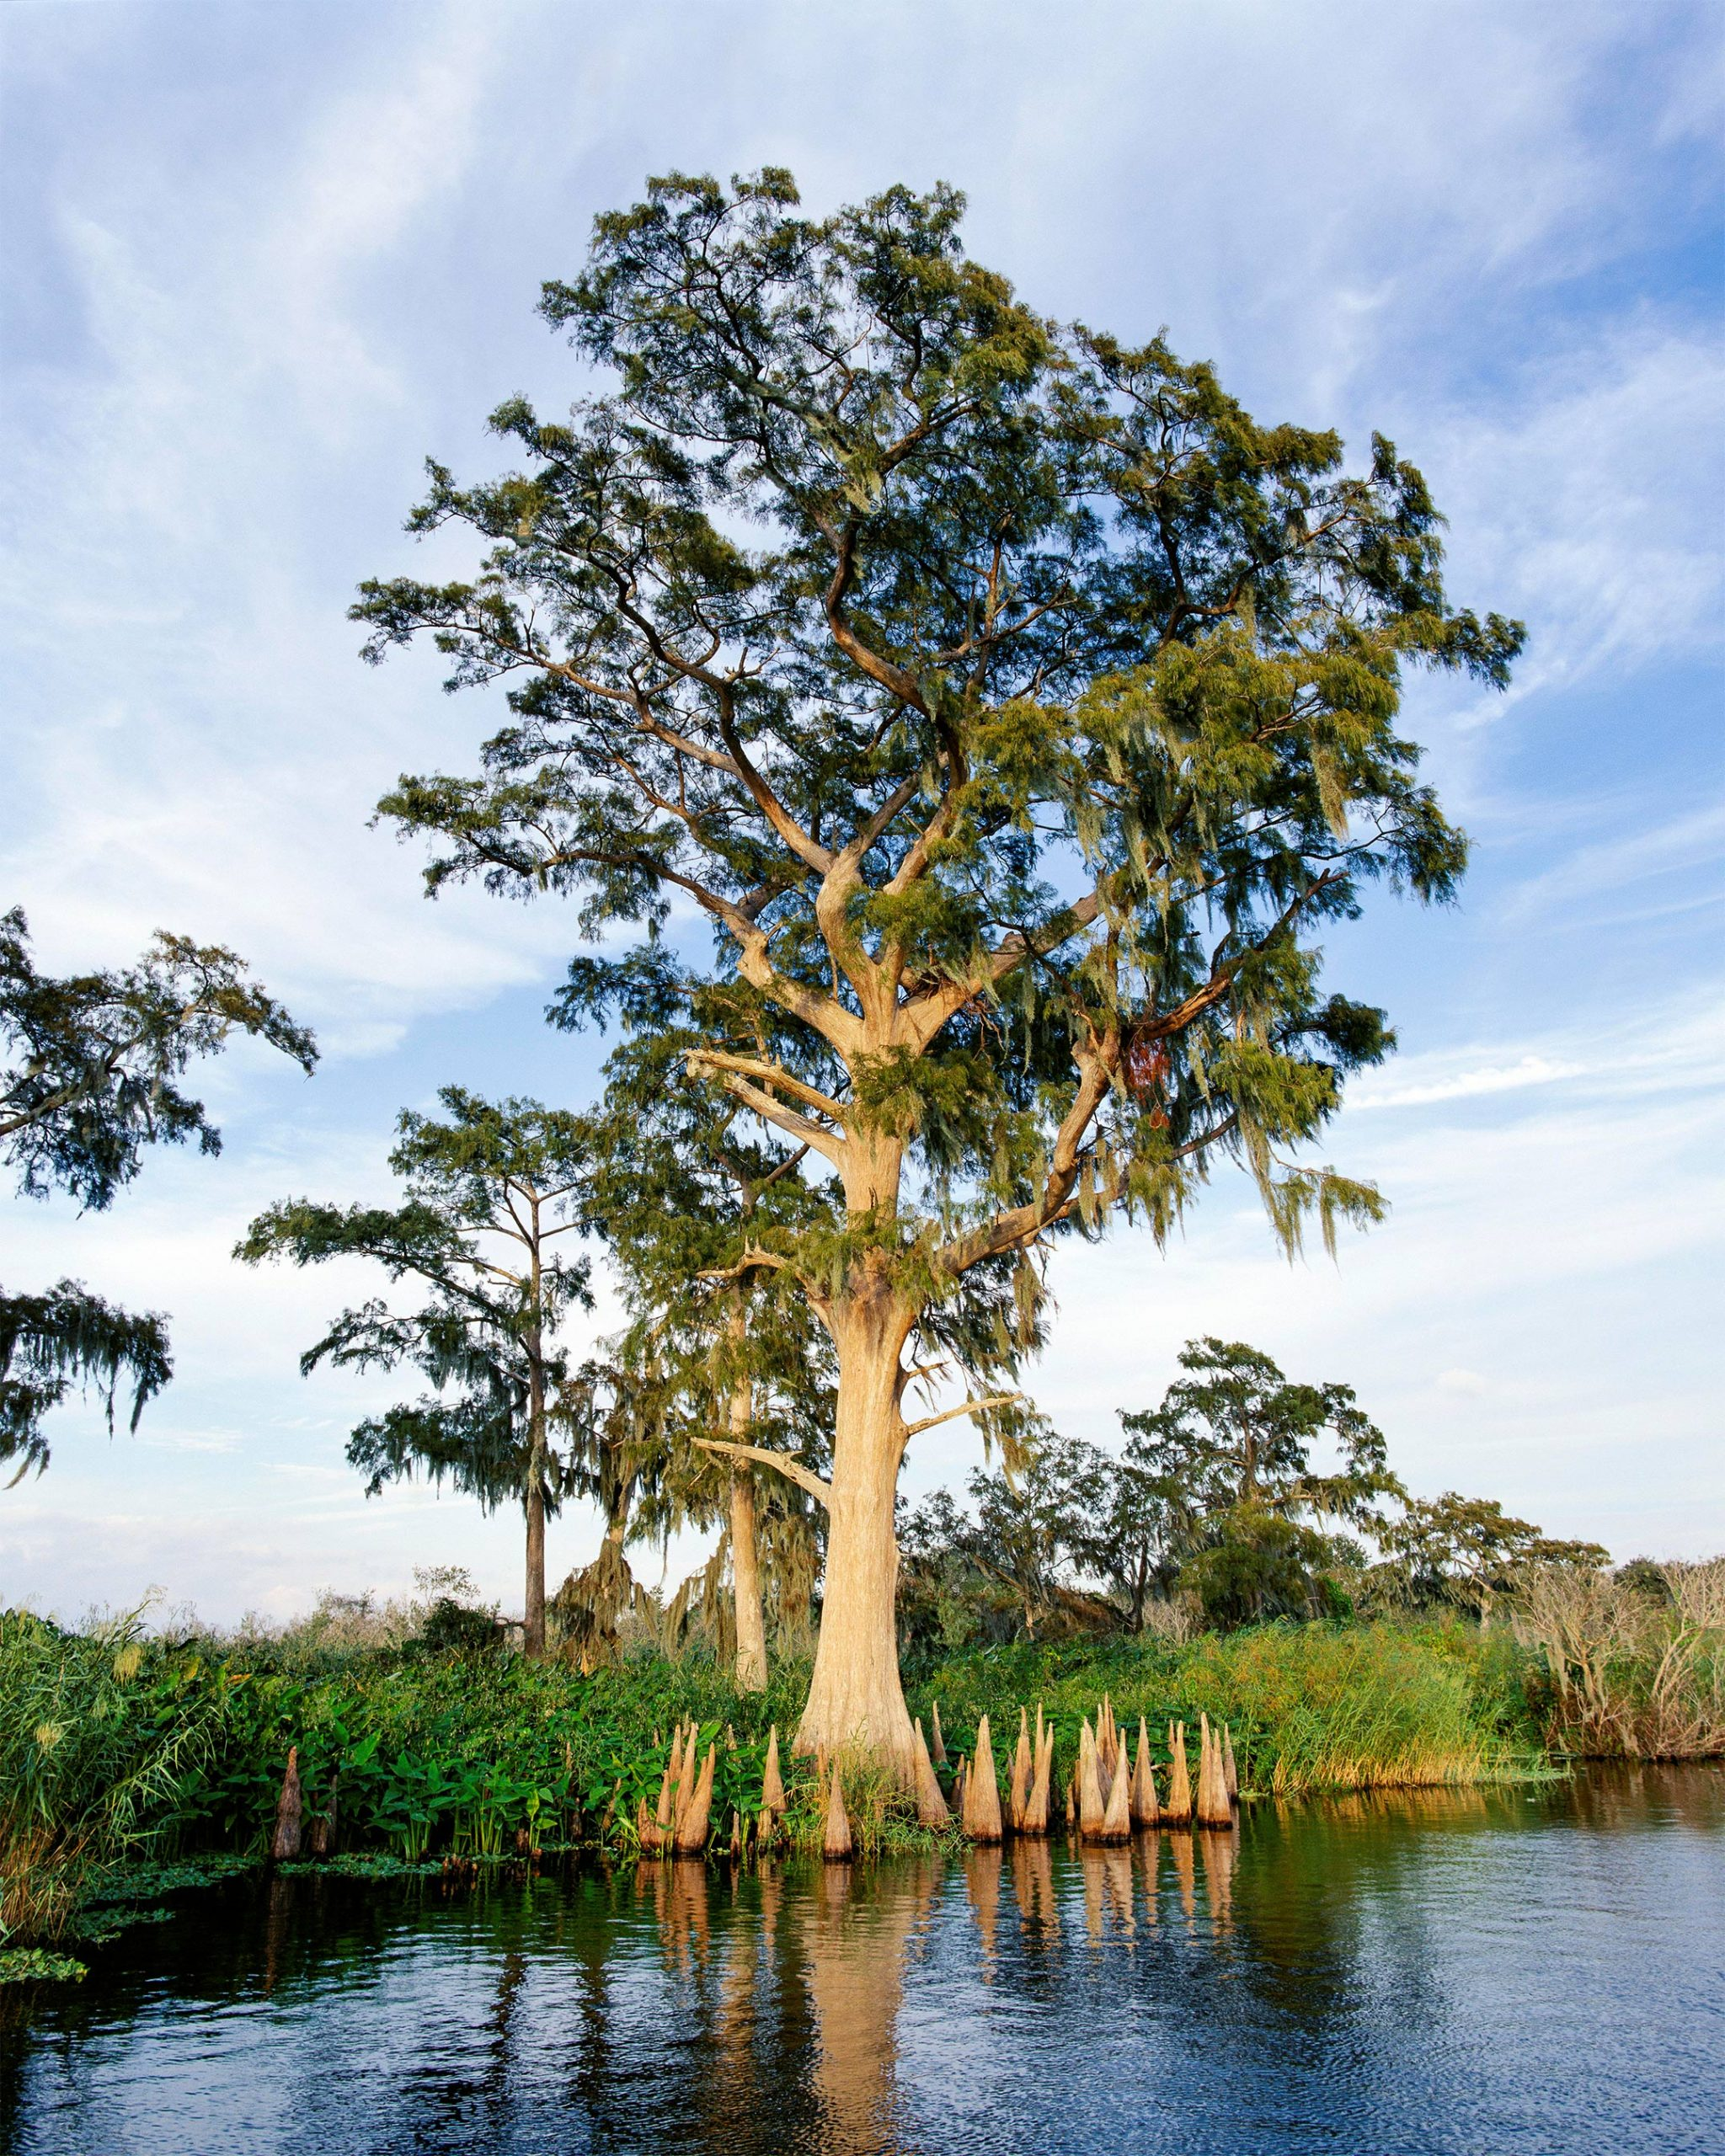 A cypress tree stands along the shore of the St. Johns River.